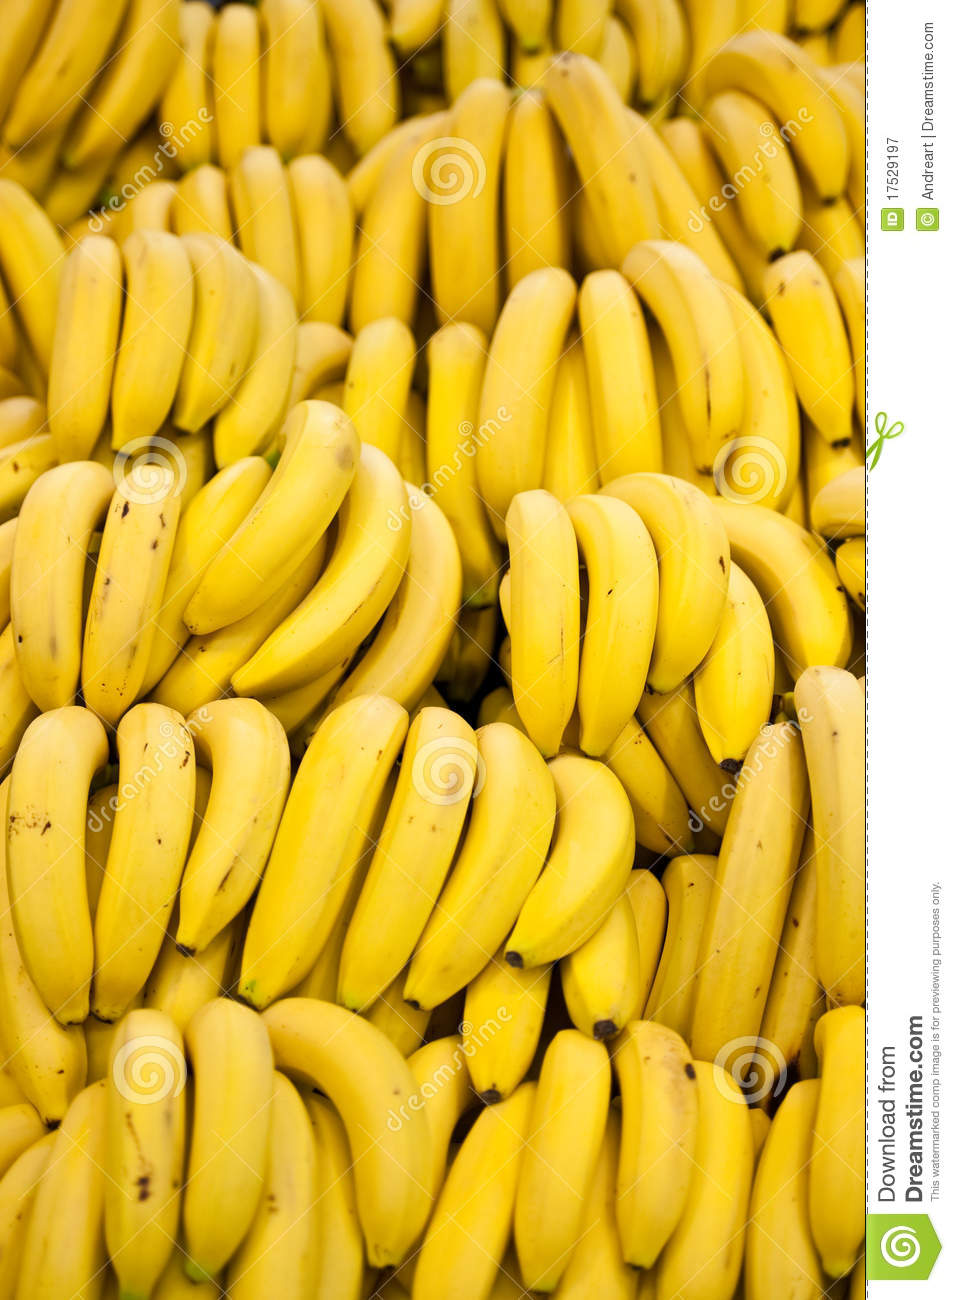 banana hd wallpaper